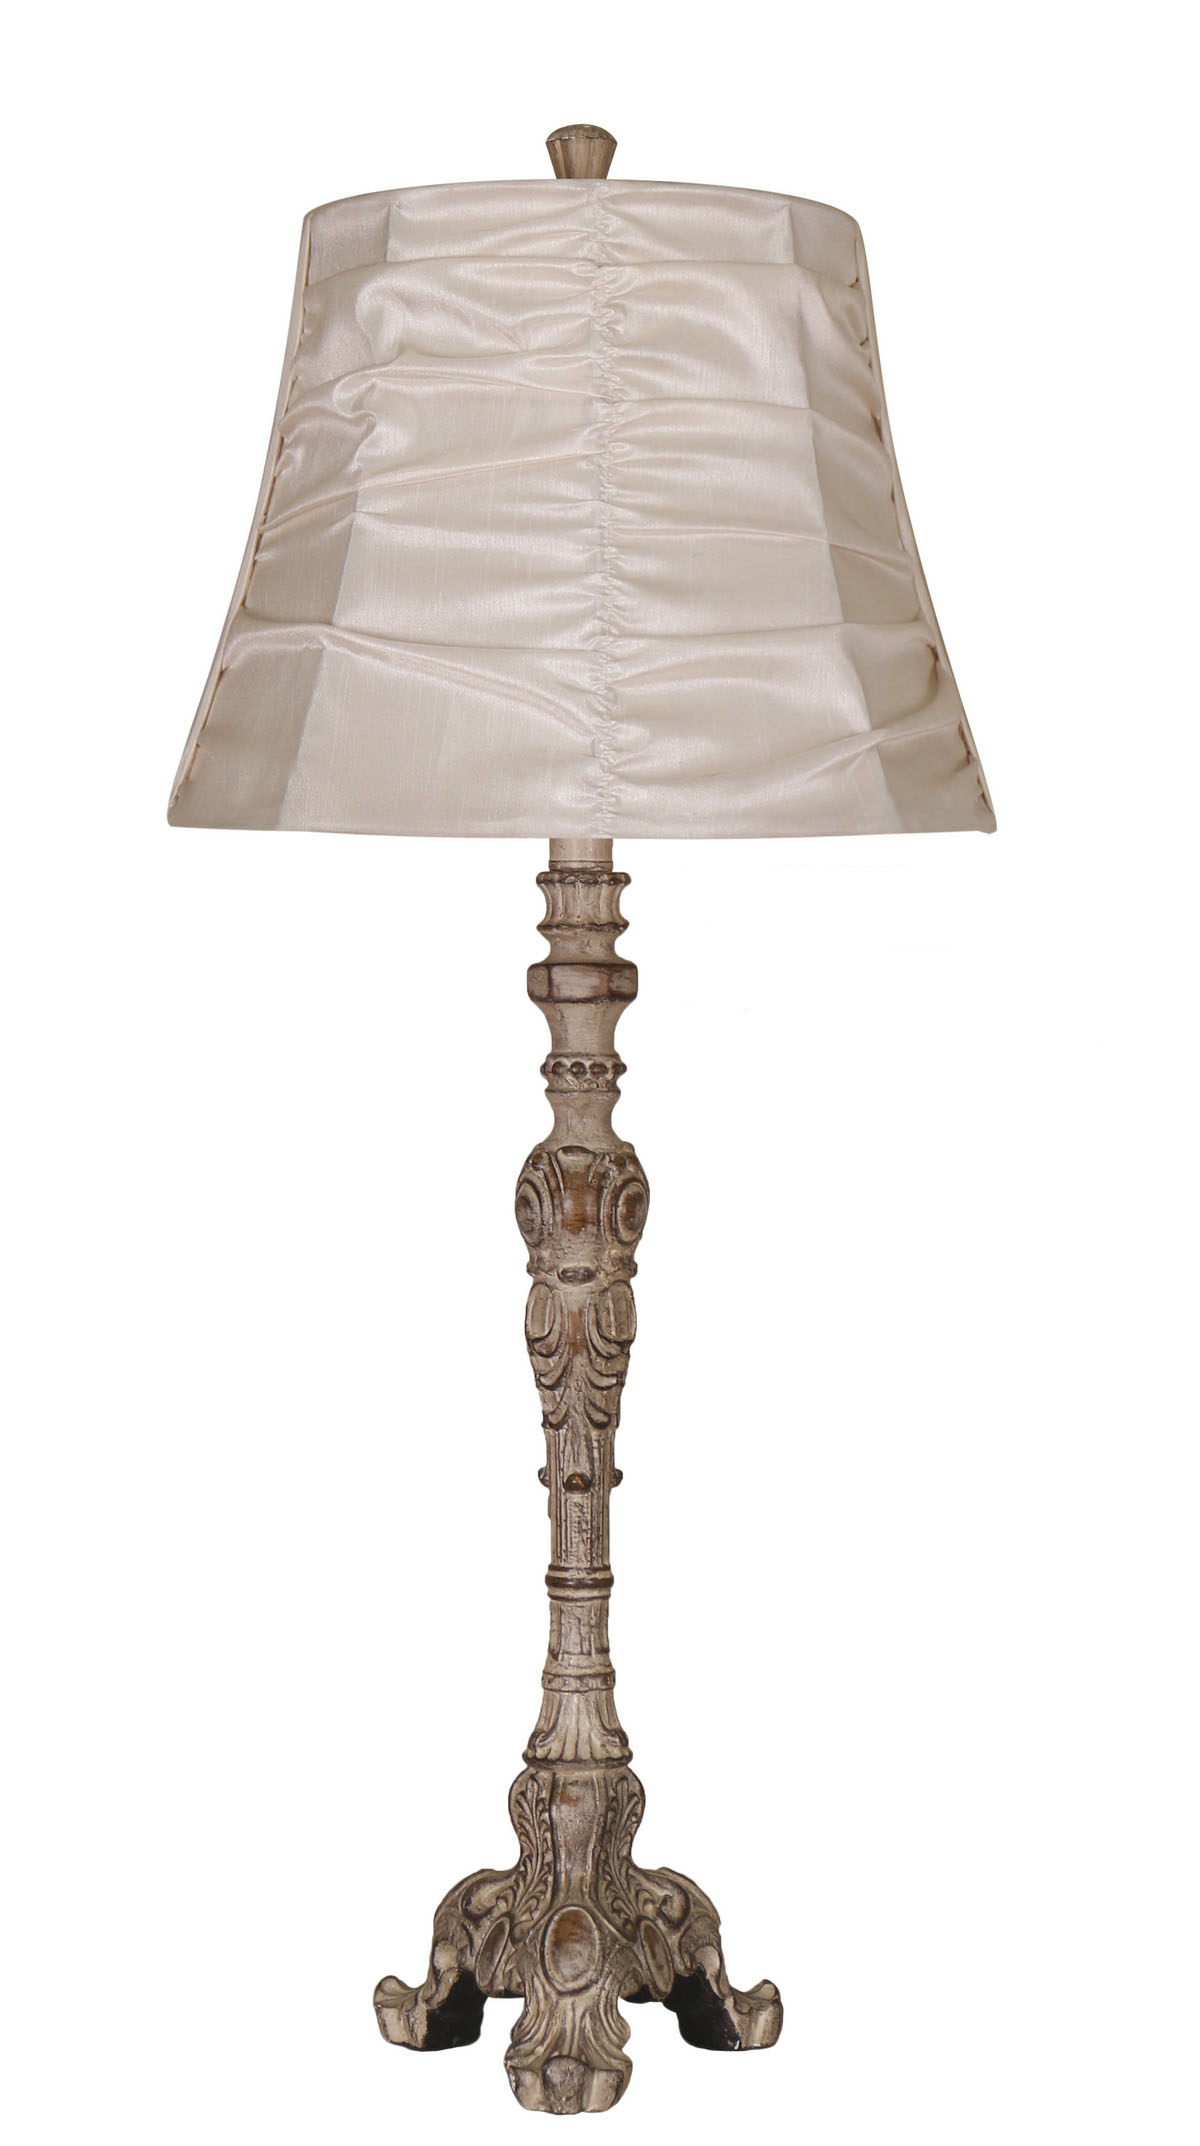 Elegant Designs Antique Style Buffet Table Lamp with Cream Ruched Shade